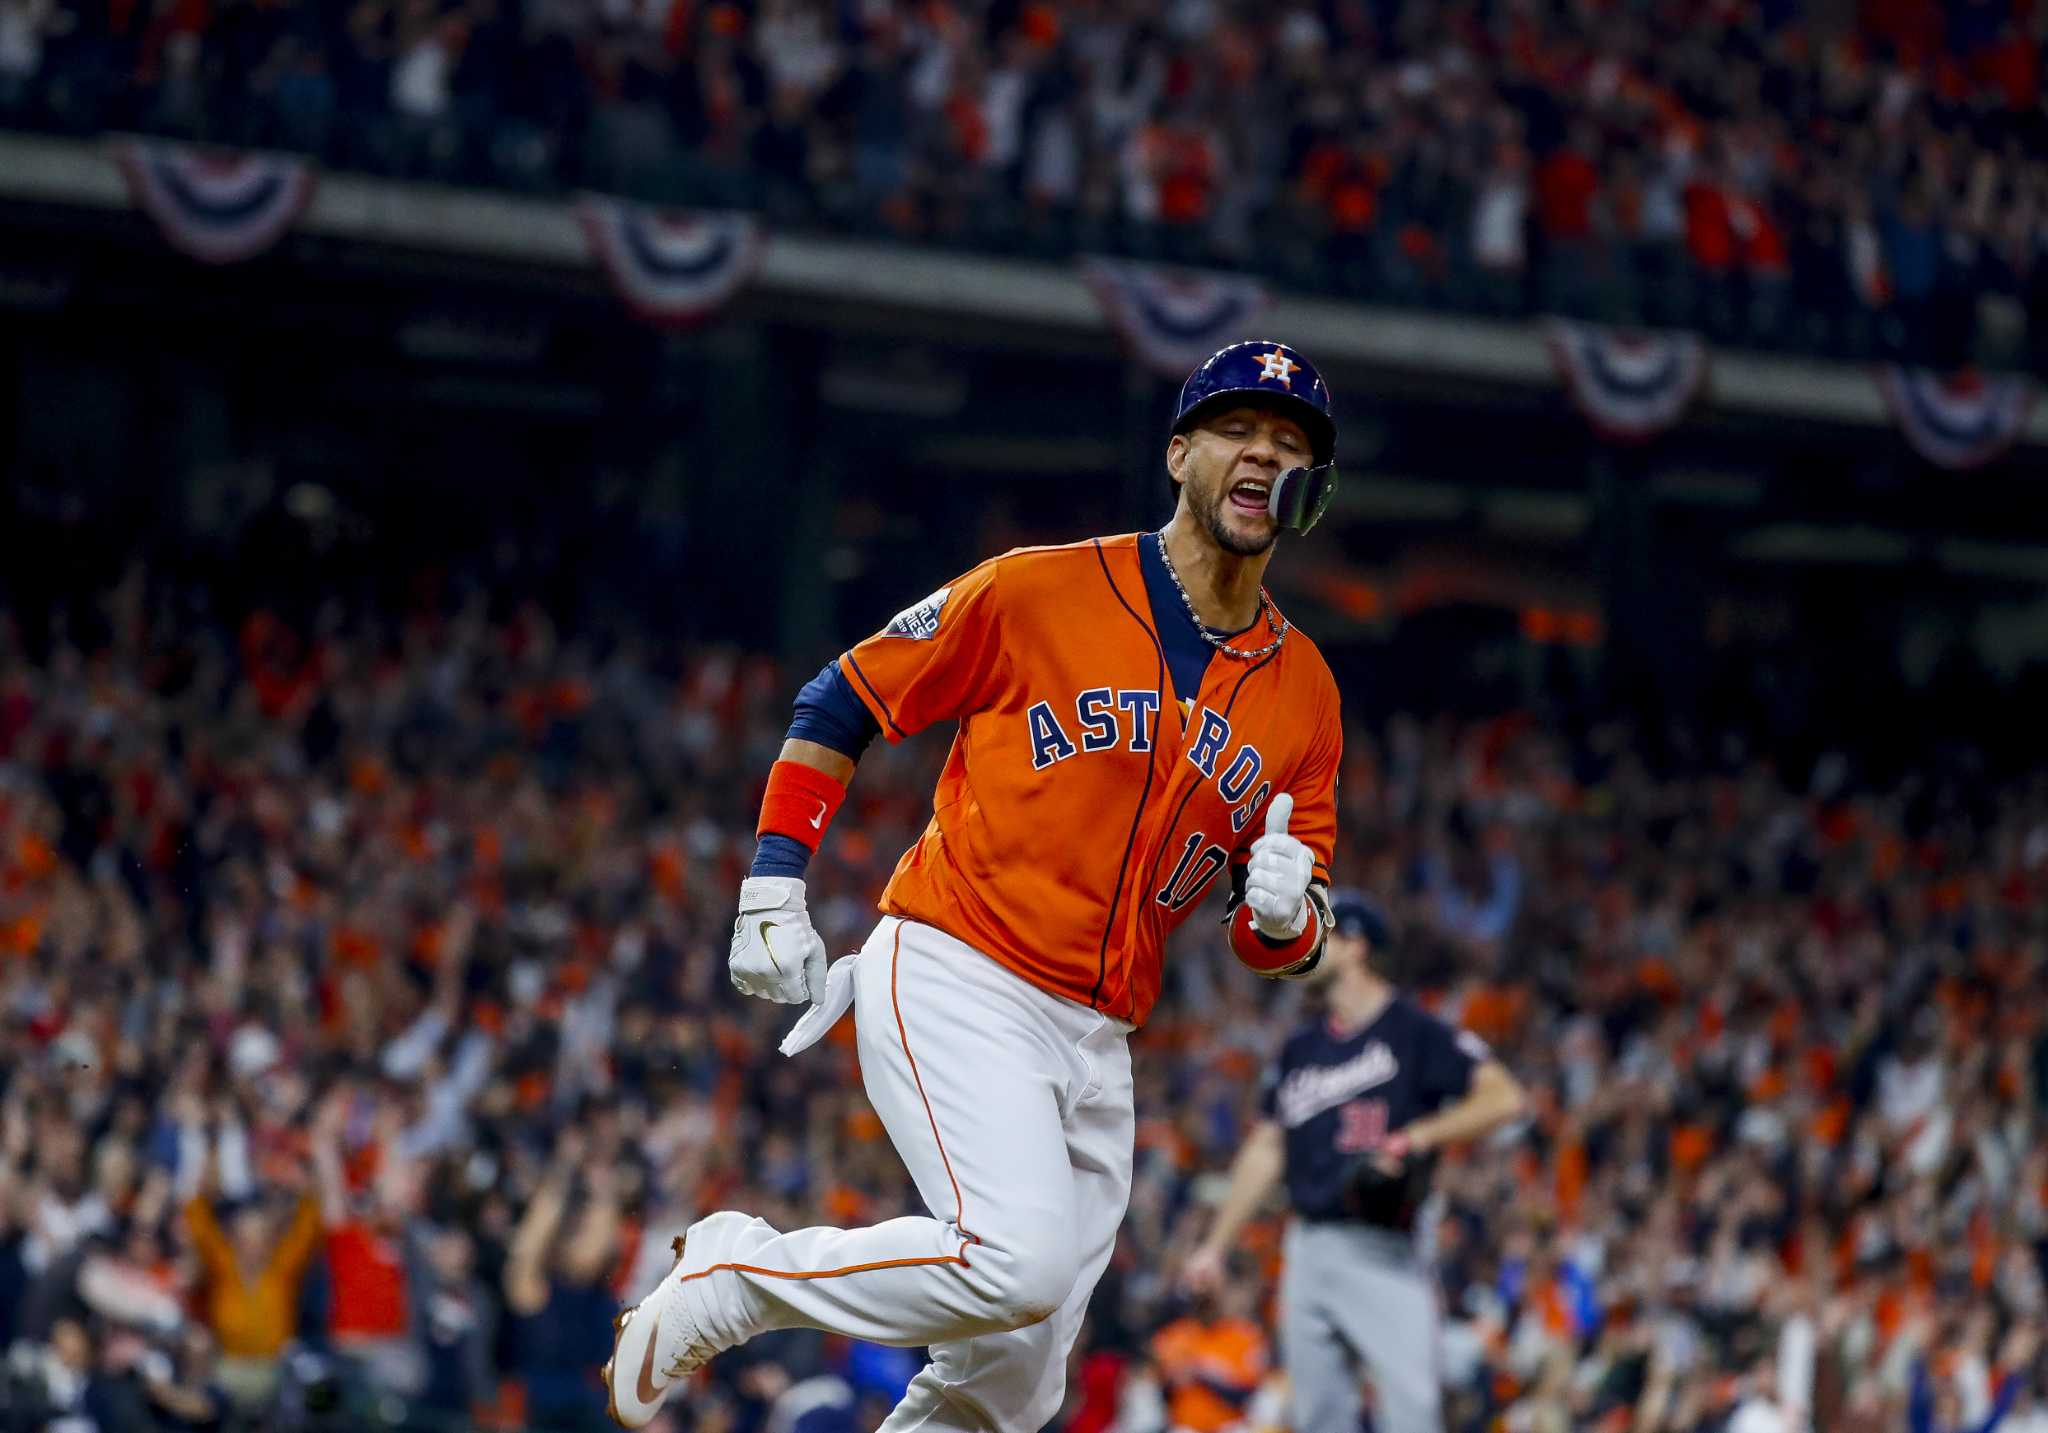 2019 Astros review: Yuli Gurriel